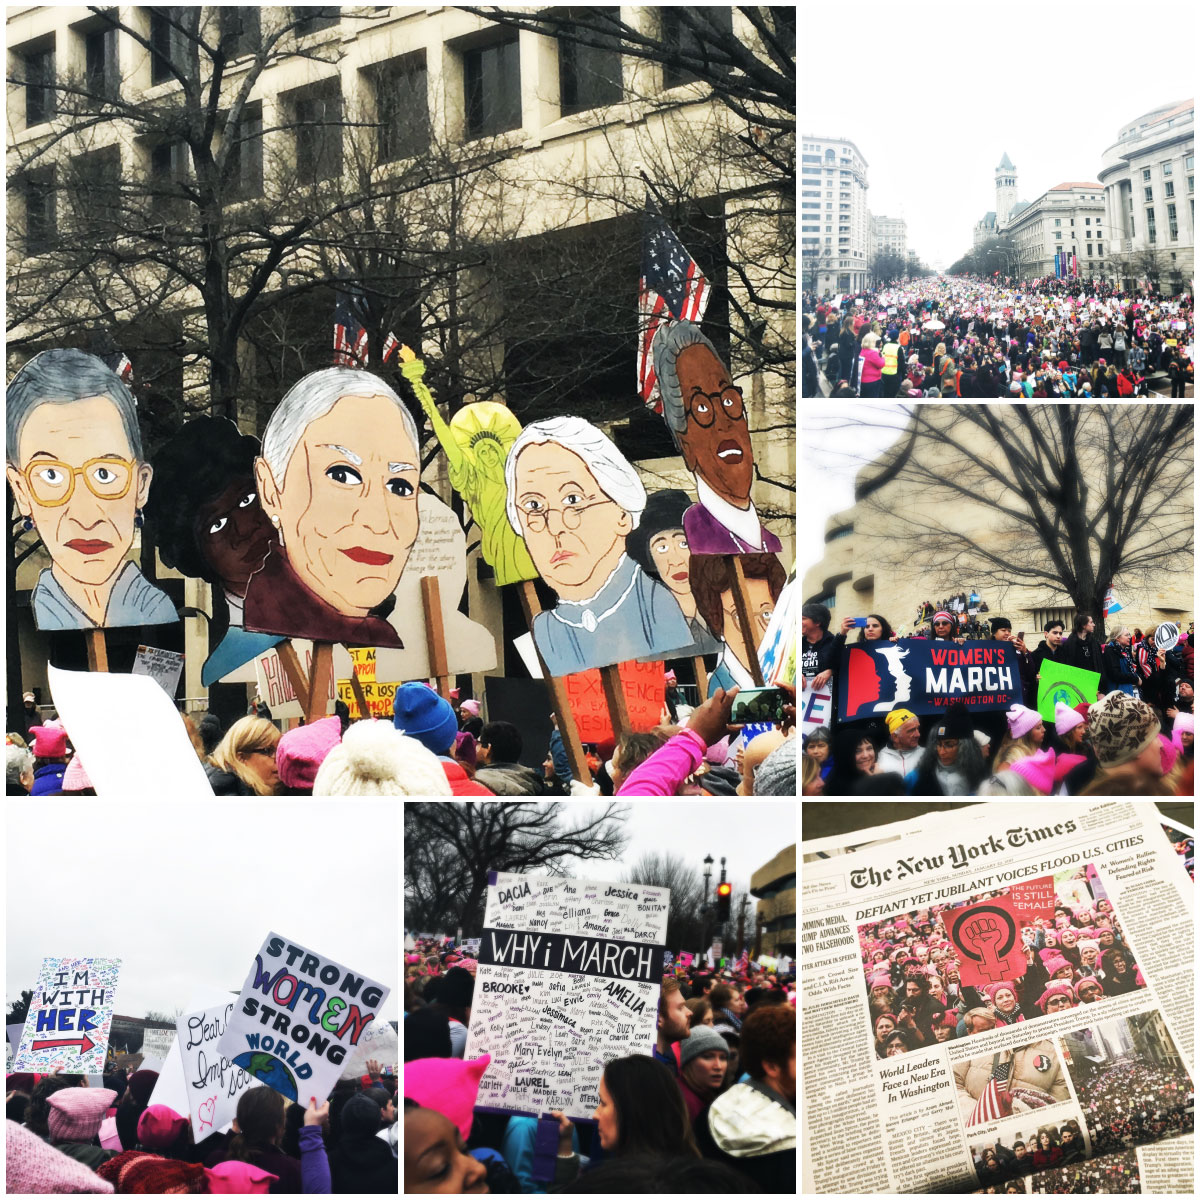 Photos from the 2017 Women's March in Washington, D.C.